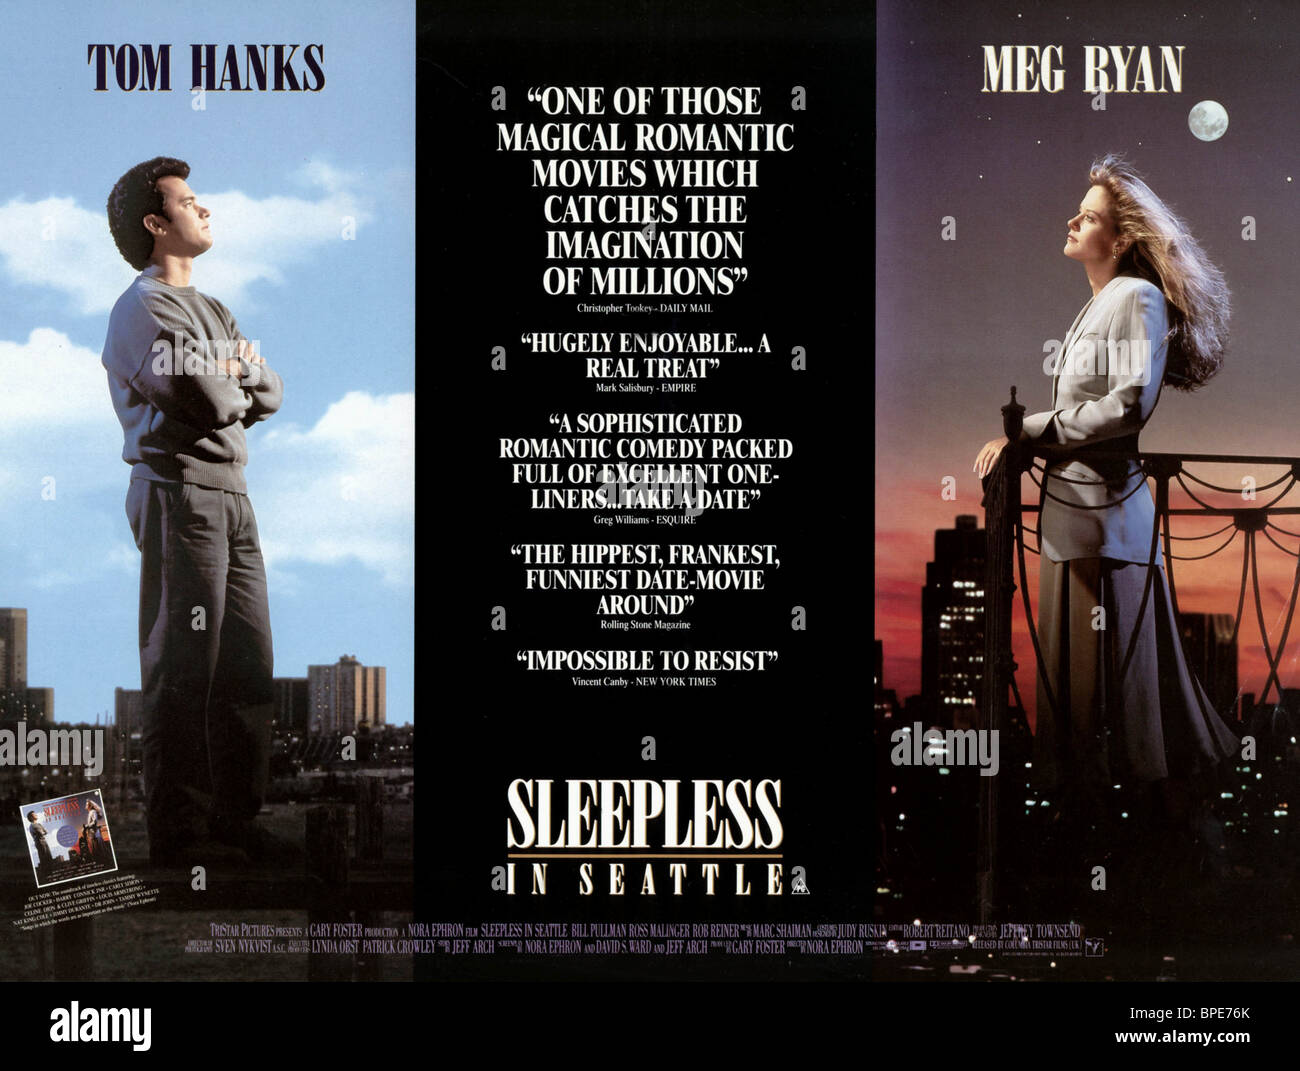 Sleepless In Seattle 1993 Poster Meg Ryan High Resolution Stock Photography And Images Alamy